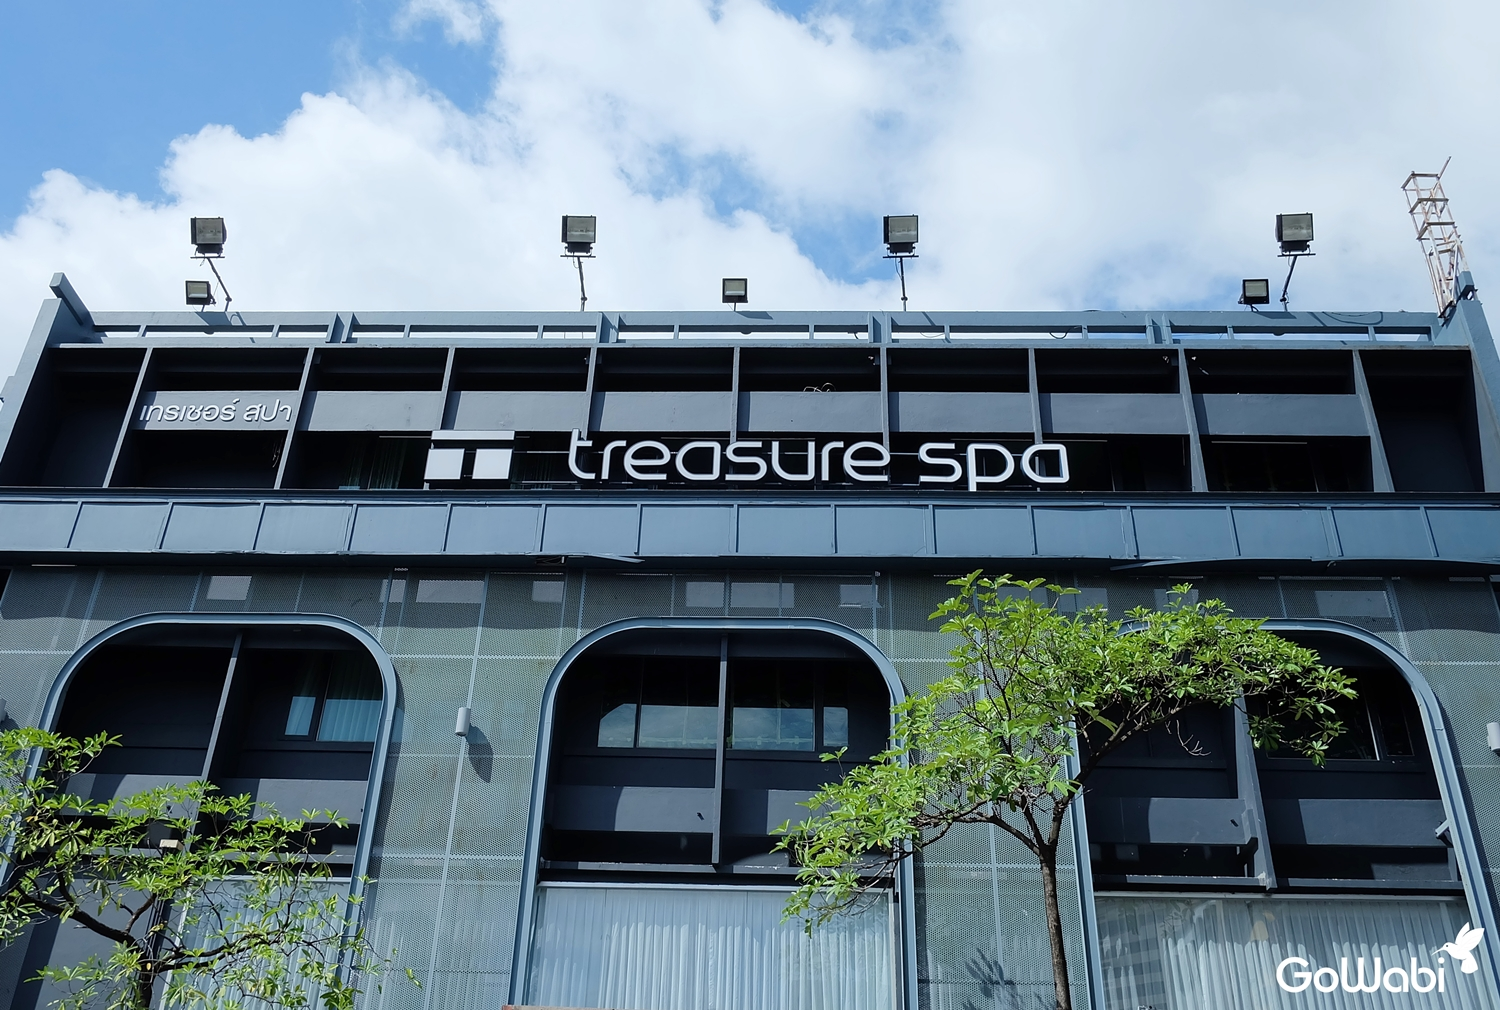 treasure spa